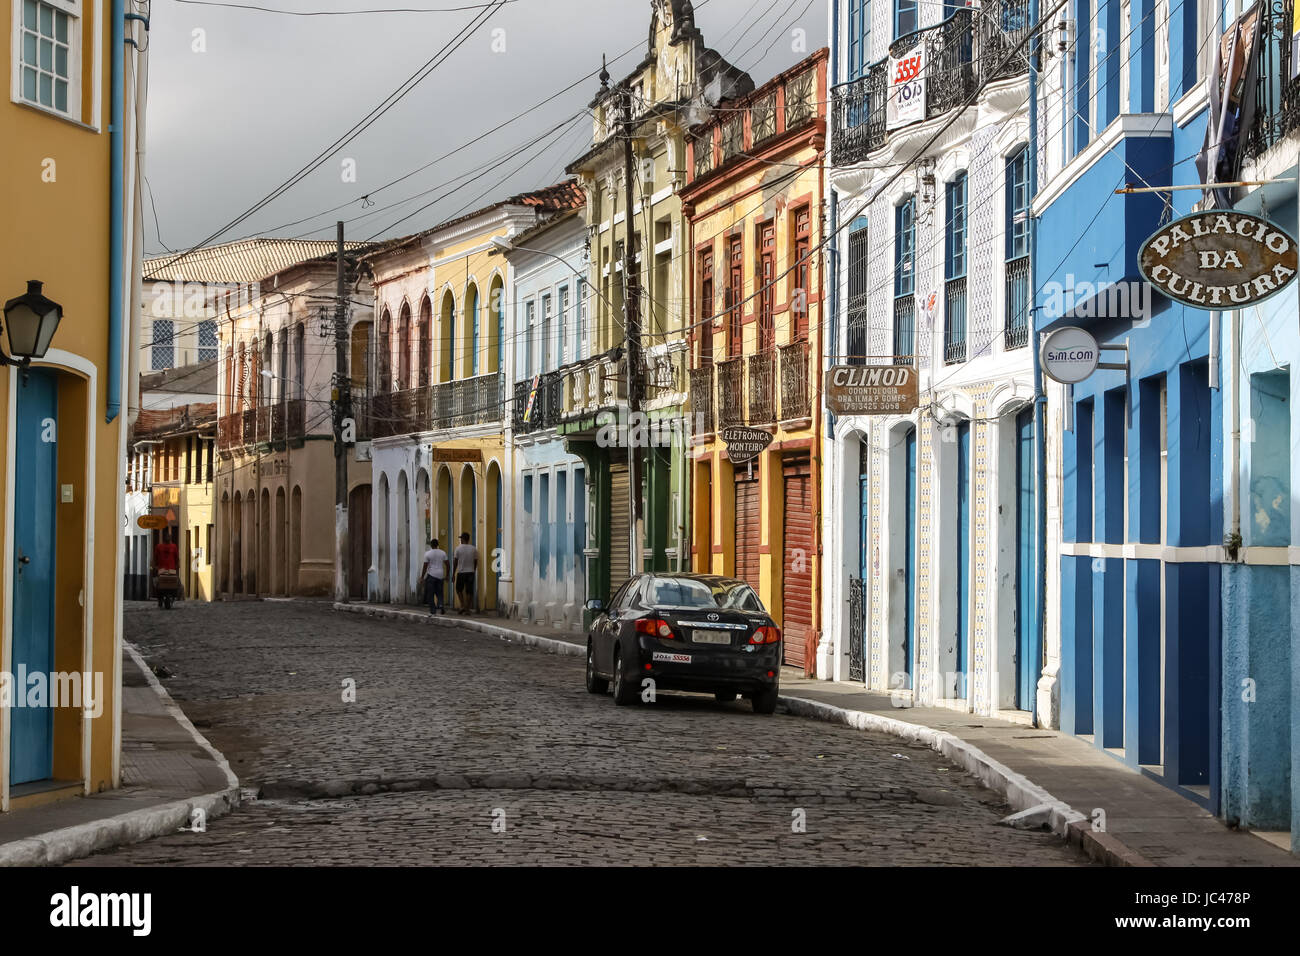 View of a street with colorful buildings in Cachoeira, a colonial city in Bahia, Brazil - Stock Image